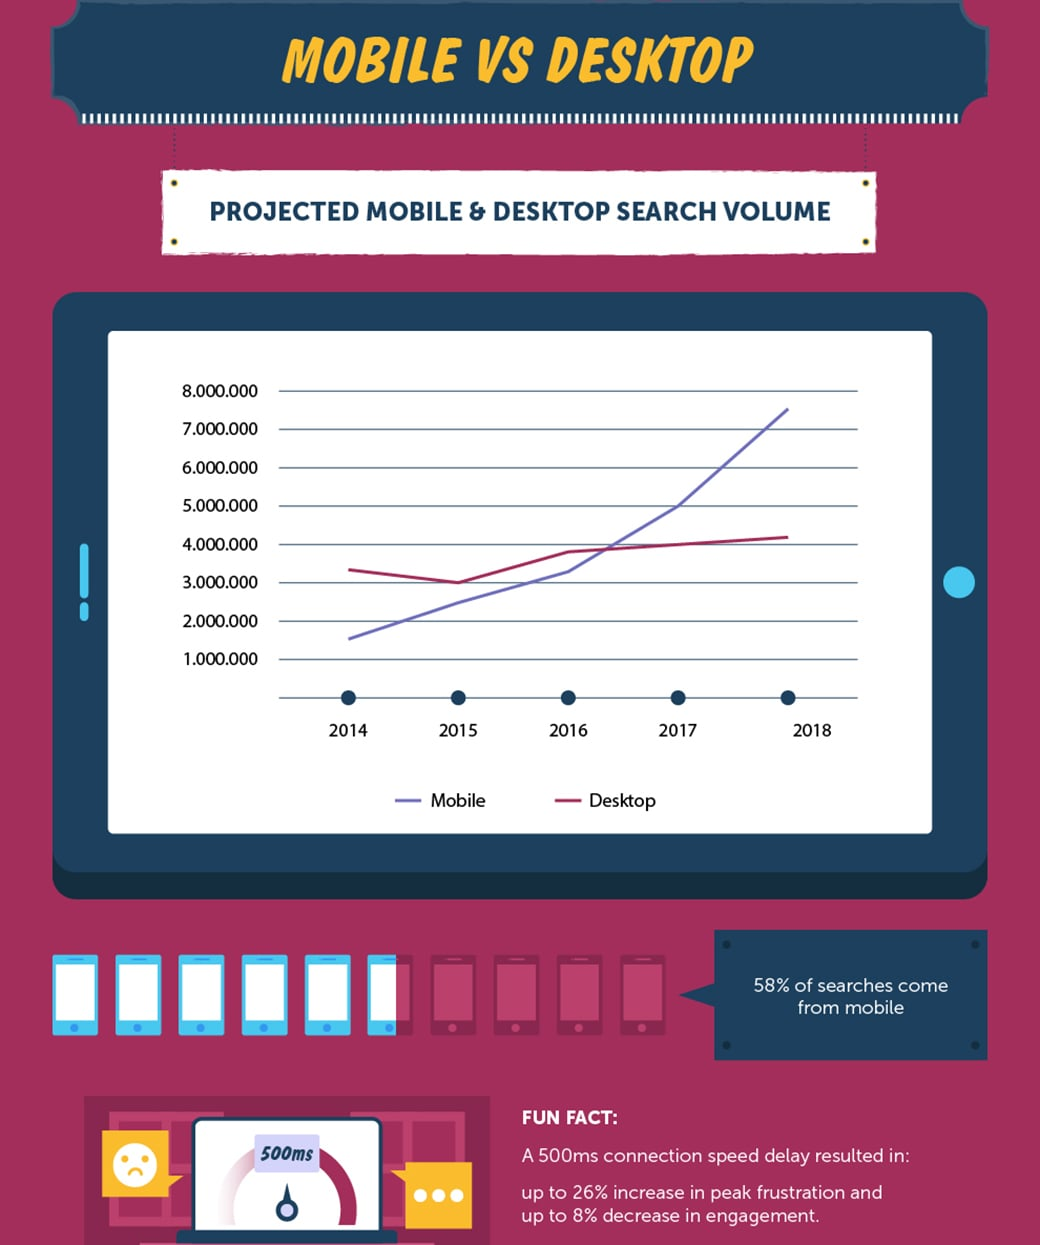 seo industry statistics for mobile and desktop use